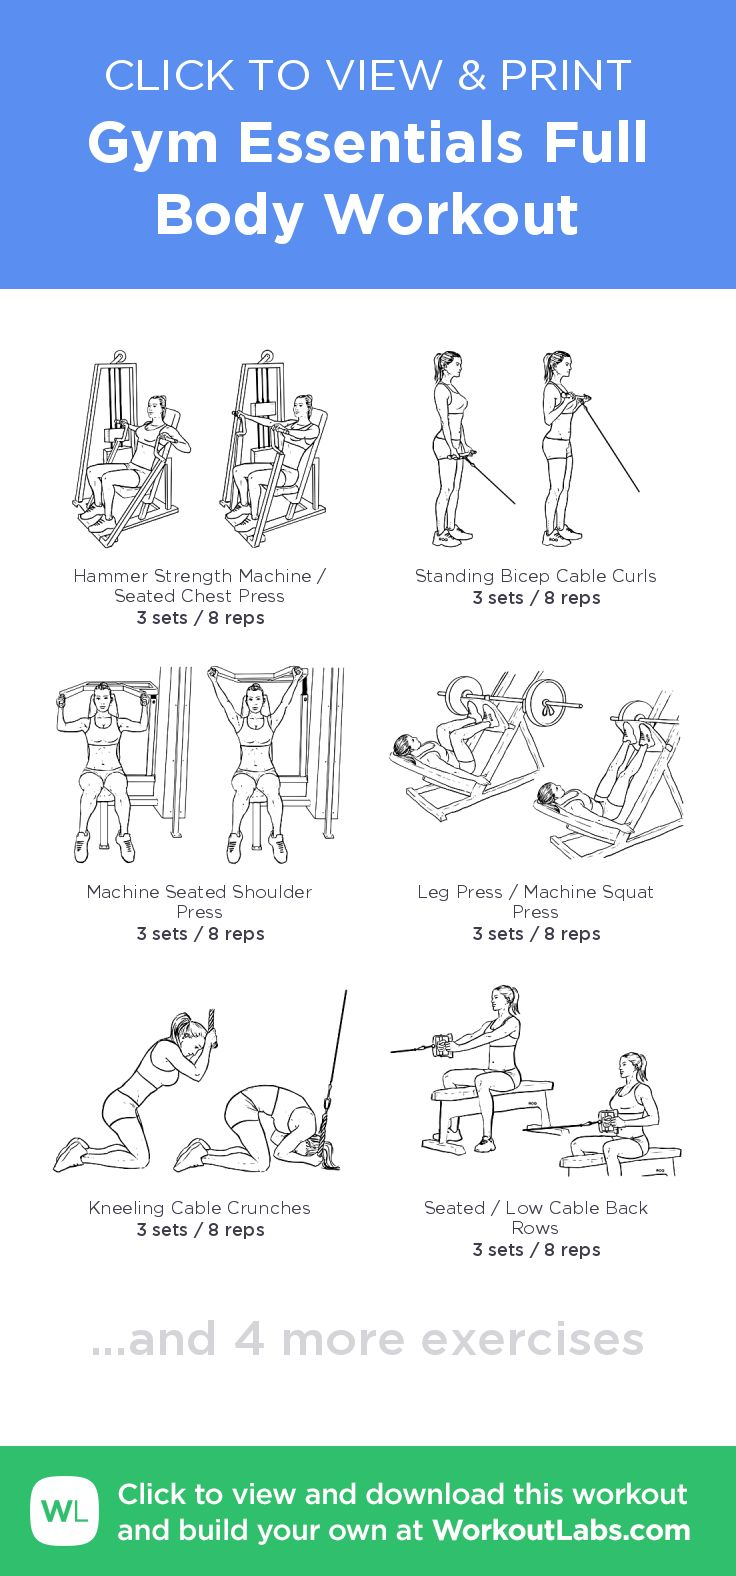 Gym Essentials Full Body Workout – click to view and print this illustrated exercise plan created with #WorkoutLabsFit